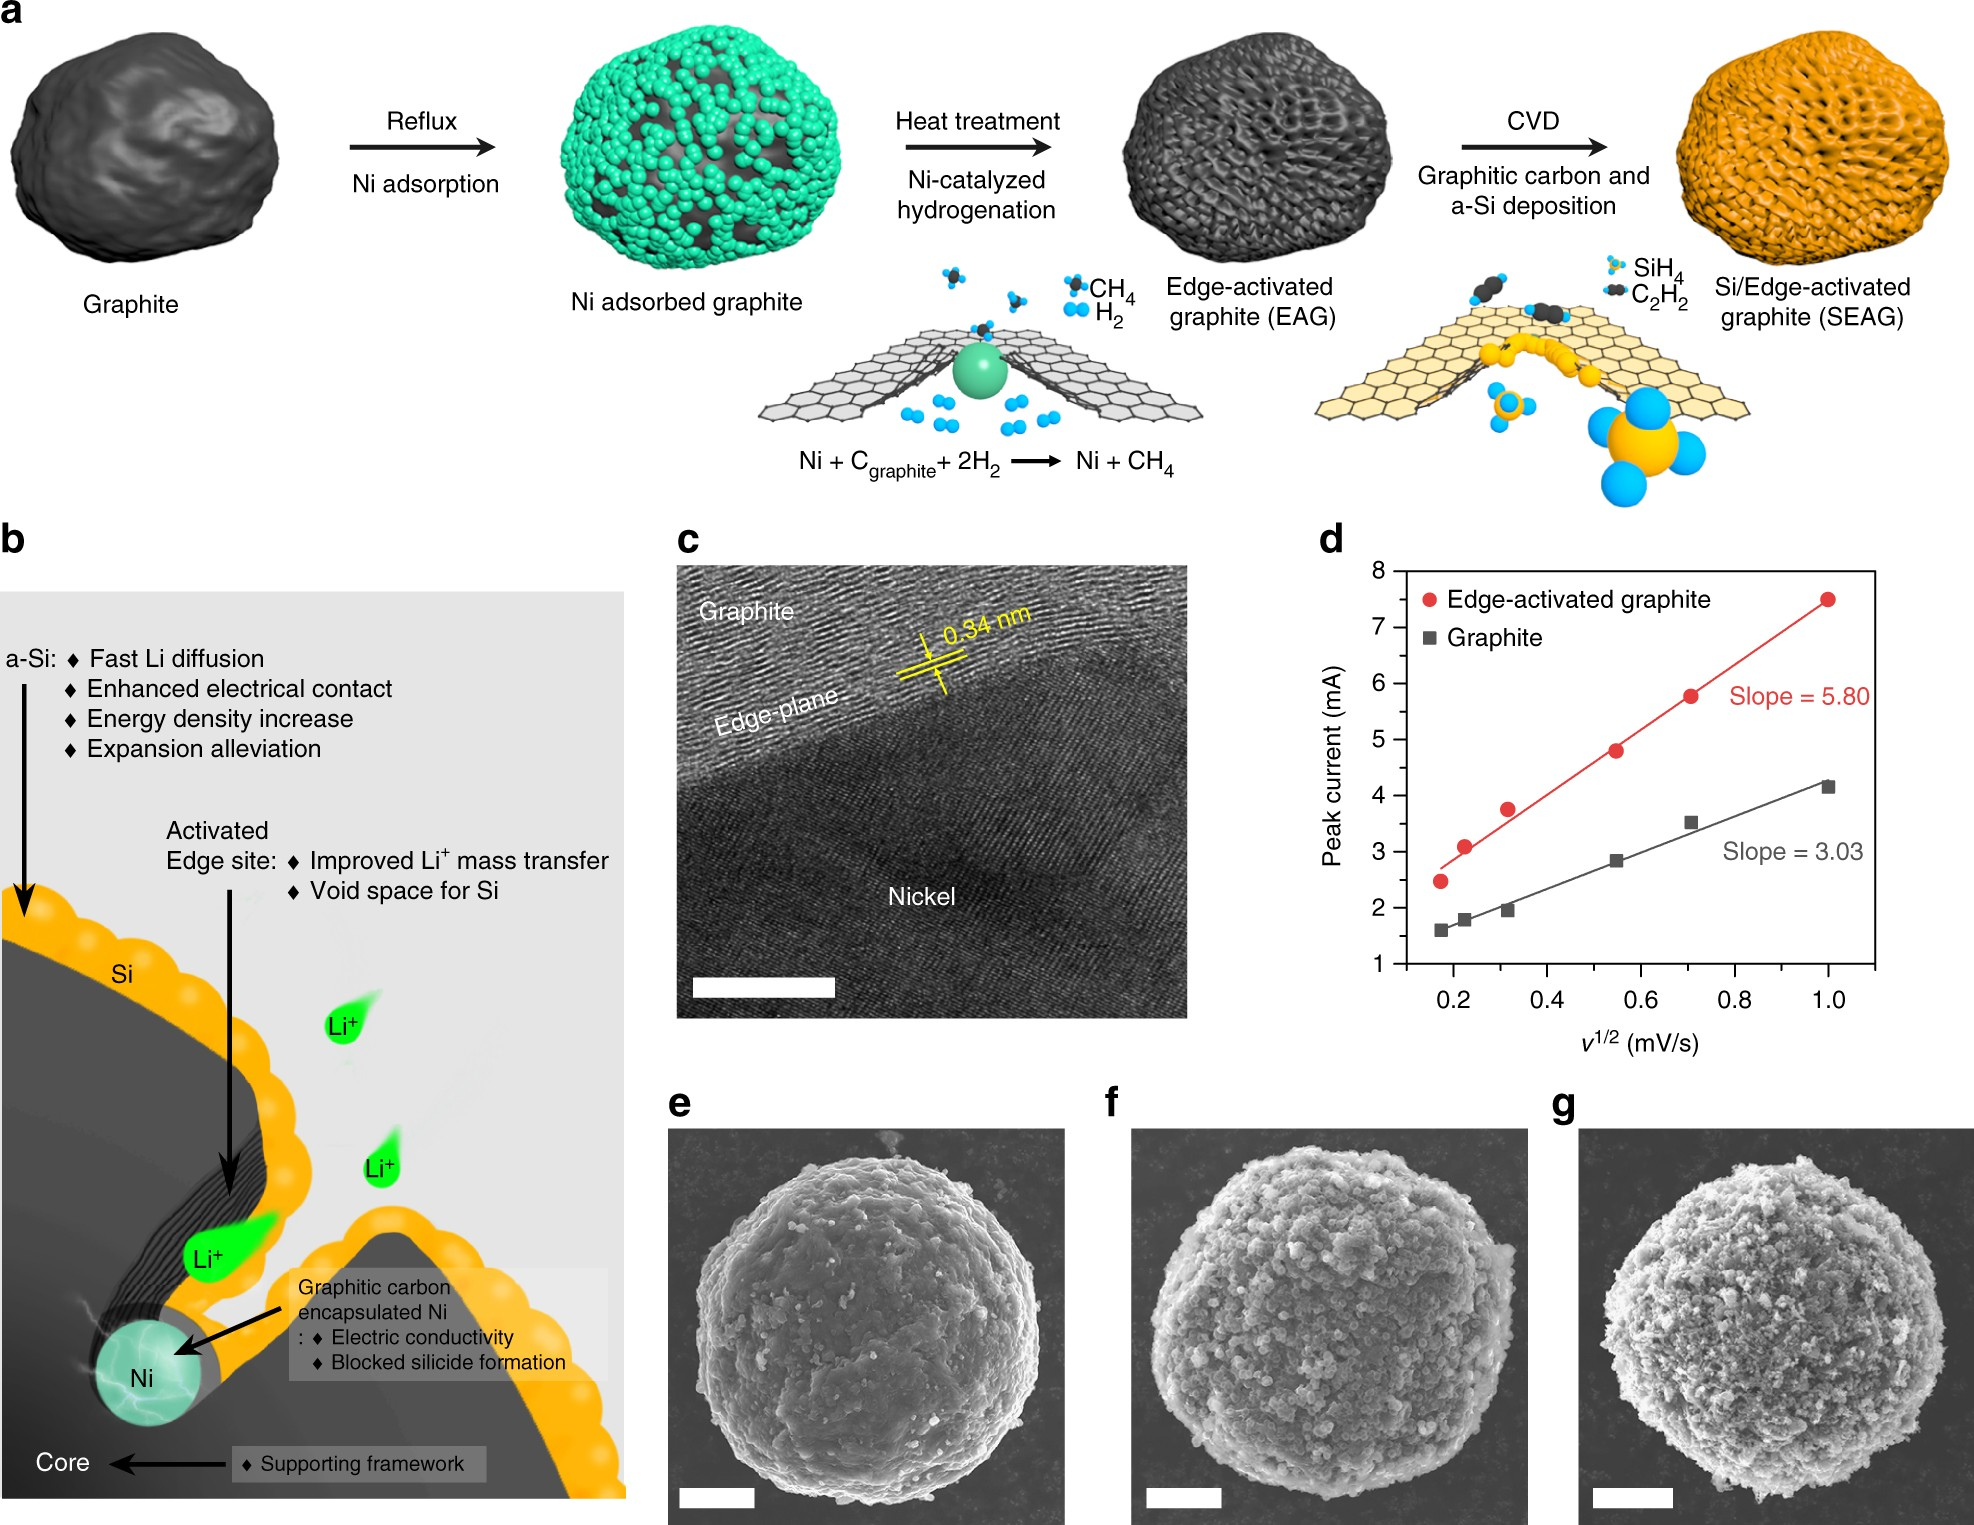 Fast Charging High Energy Lithium Ion Batteries Via Implantation Of Electrical 2011 Provides Circuit Design And Analysis Tools Amorphous Silicon Nanolayer In Edge Plane Activated Graphite Anodes Nature